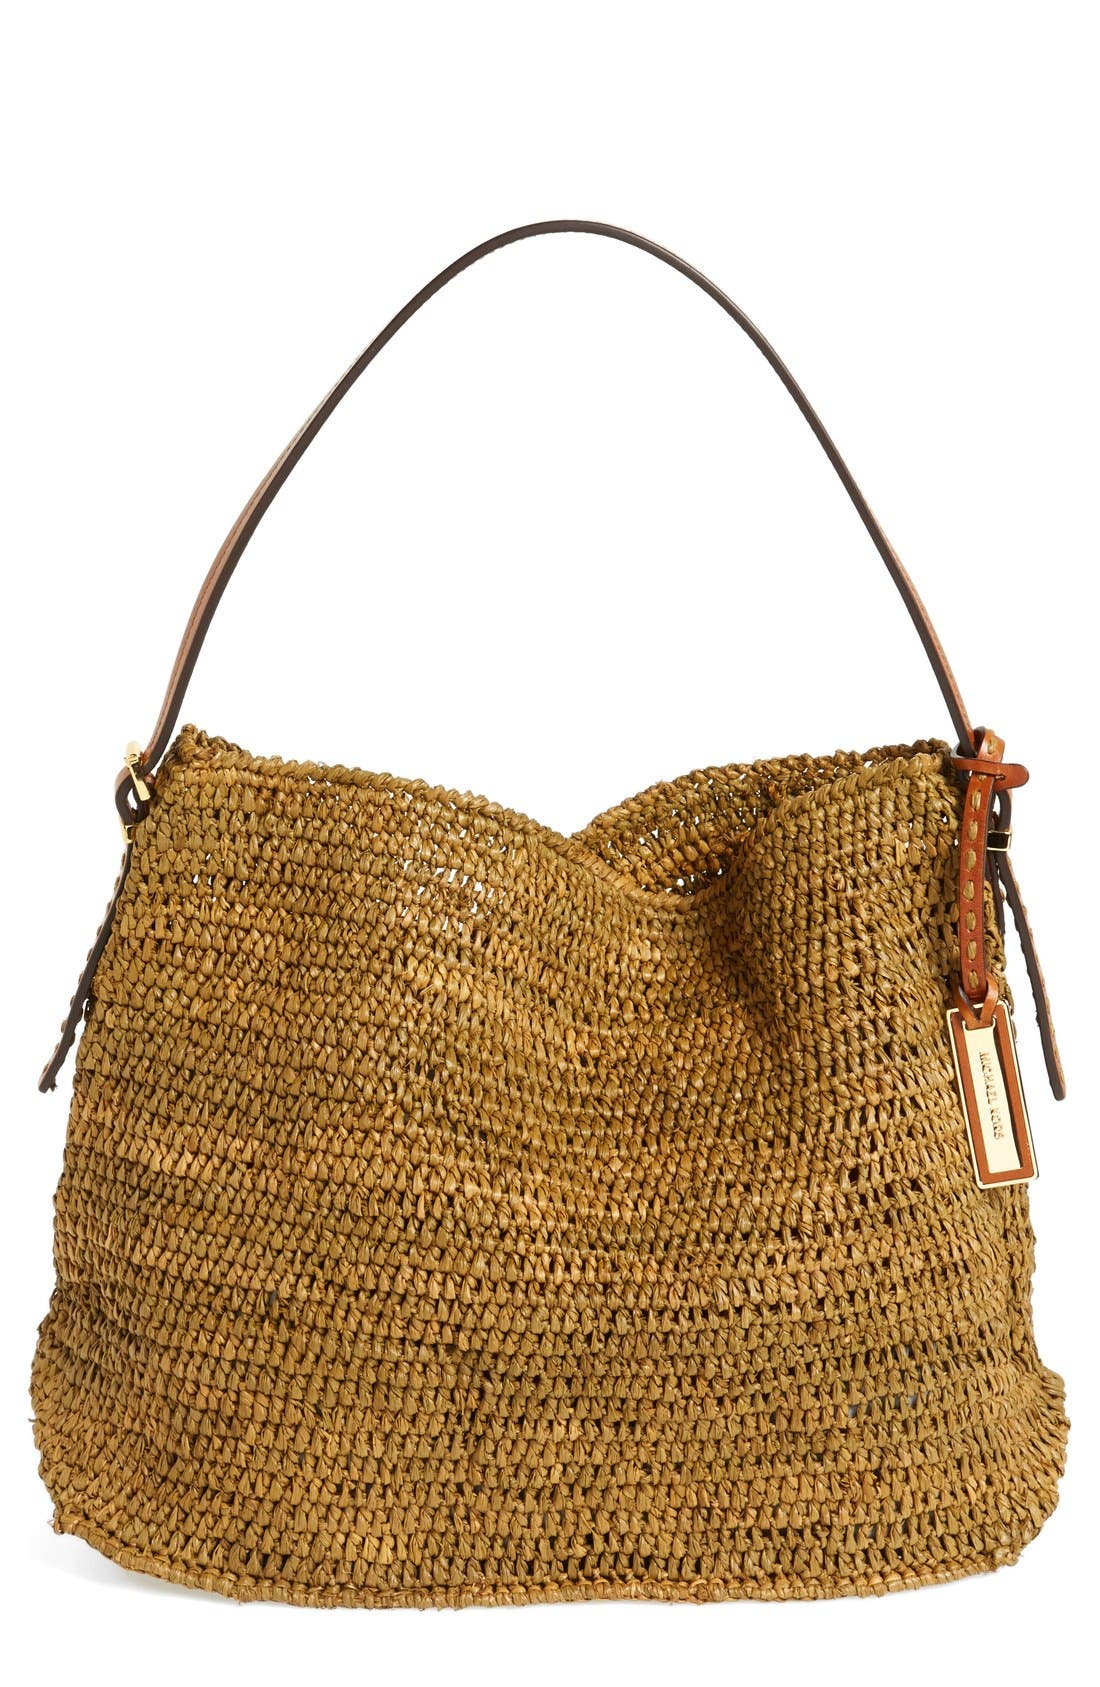 Alternate Image 1 Selected - Michael Kors 'Santorini' Raffia Hobo